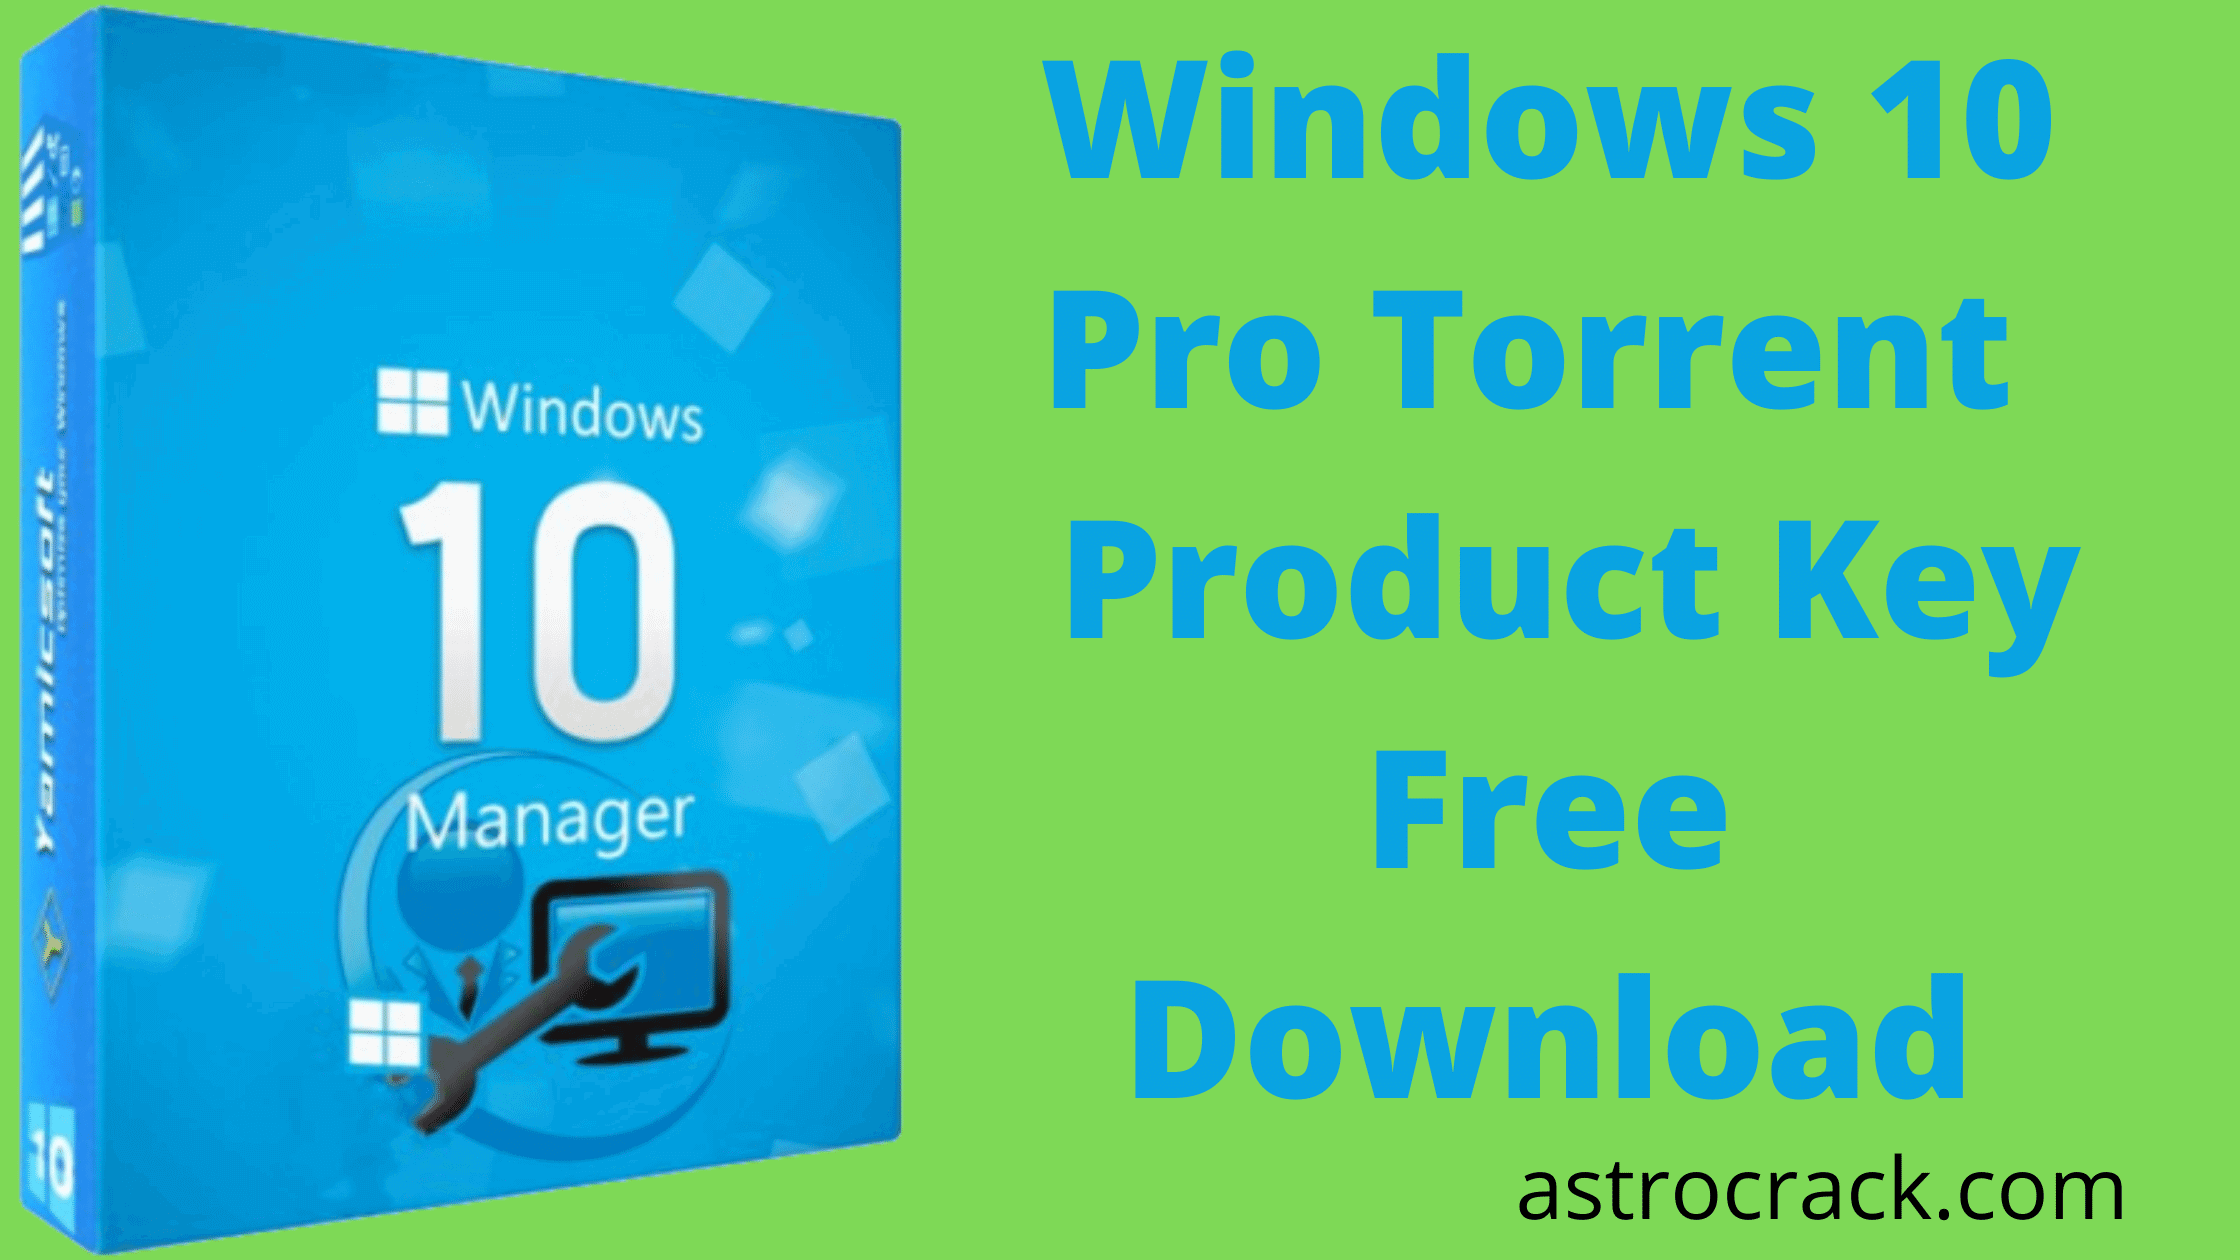 Windows 10 Pro, Windows 10 Pro crack, Windows 10 Pro crack download, Windows 10 Pro Crack patched, Windows 10 Pro download